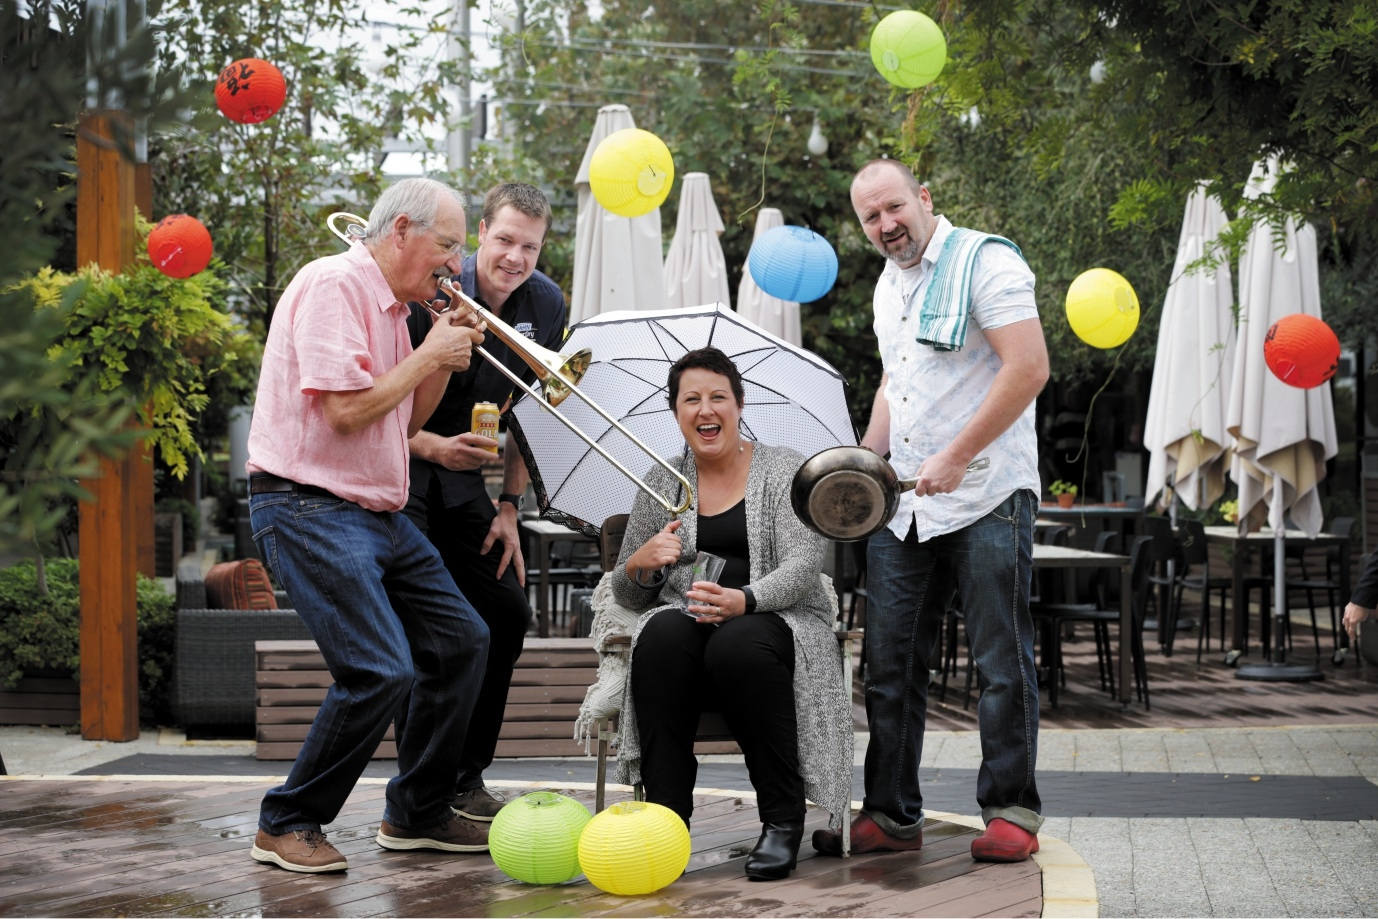 Roy Burton from the Jazz Cellar, Jon Randall from the Paddo, Natalie Upson from Mt Hawthorn Hub and Festival Food coordinator Iain Lawless get ready for the festival. |Picture: Andrew Ritchie          d436100